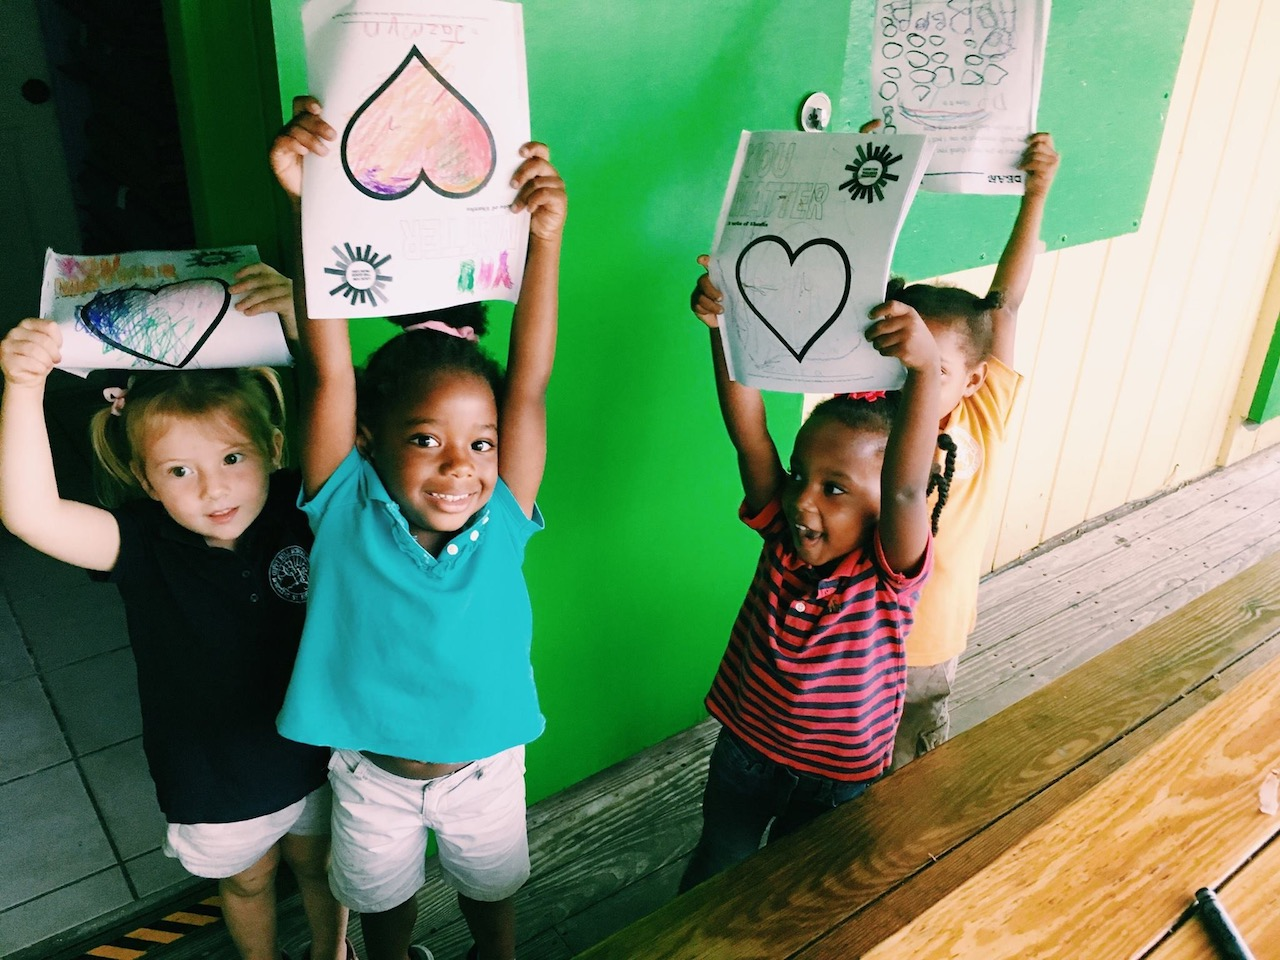 Kids holding up hearts drawn and colored on paper